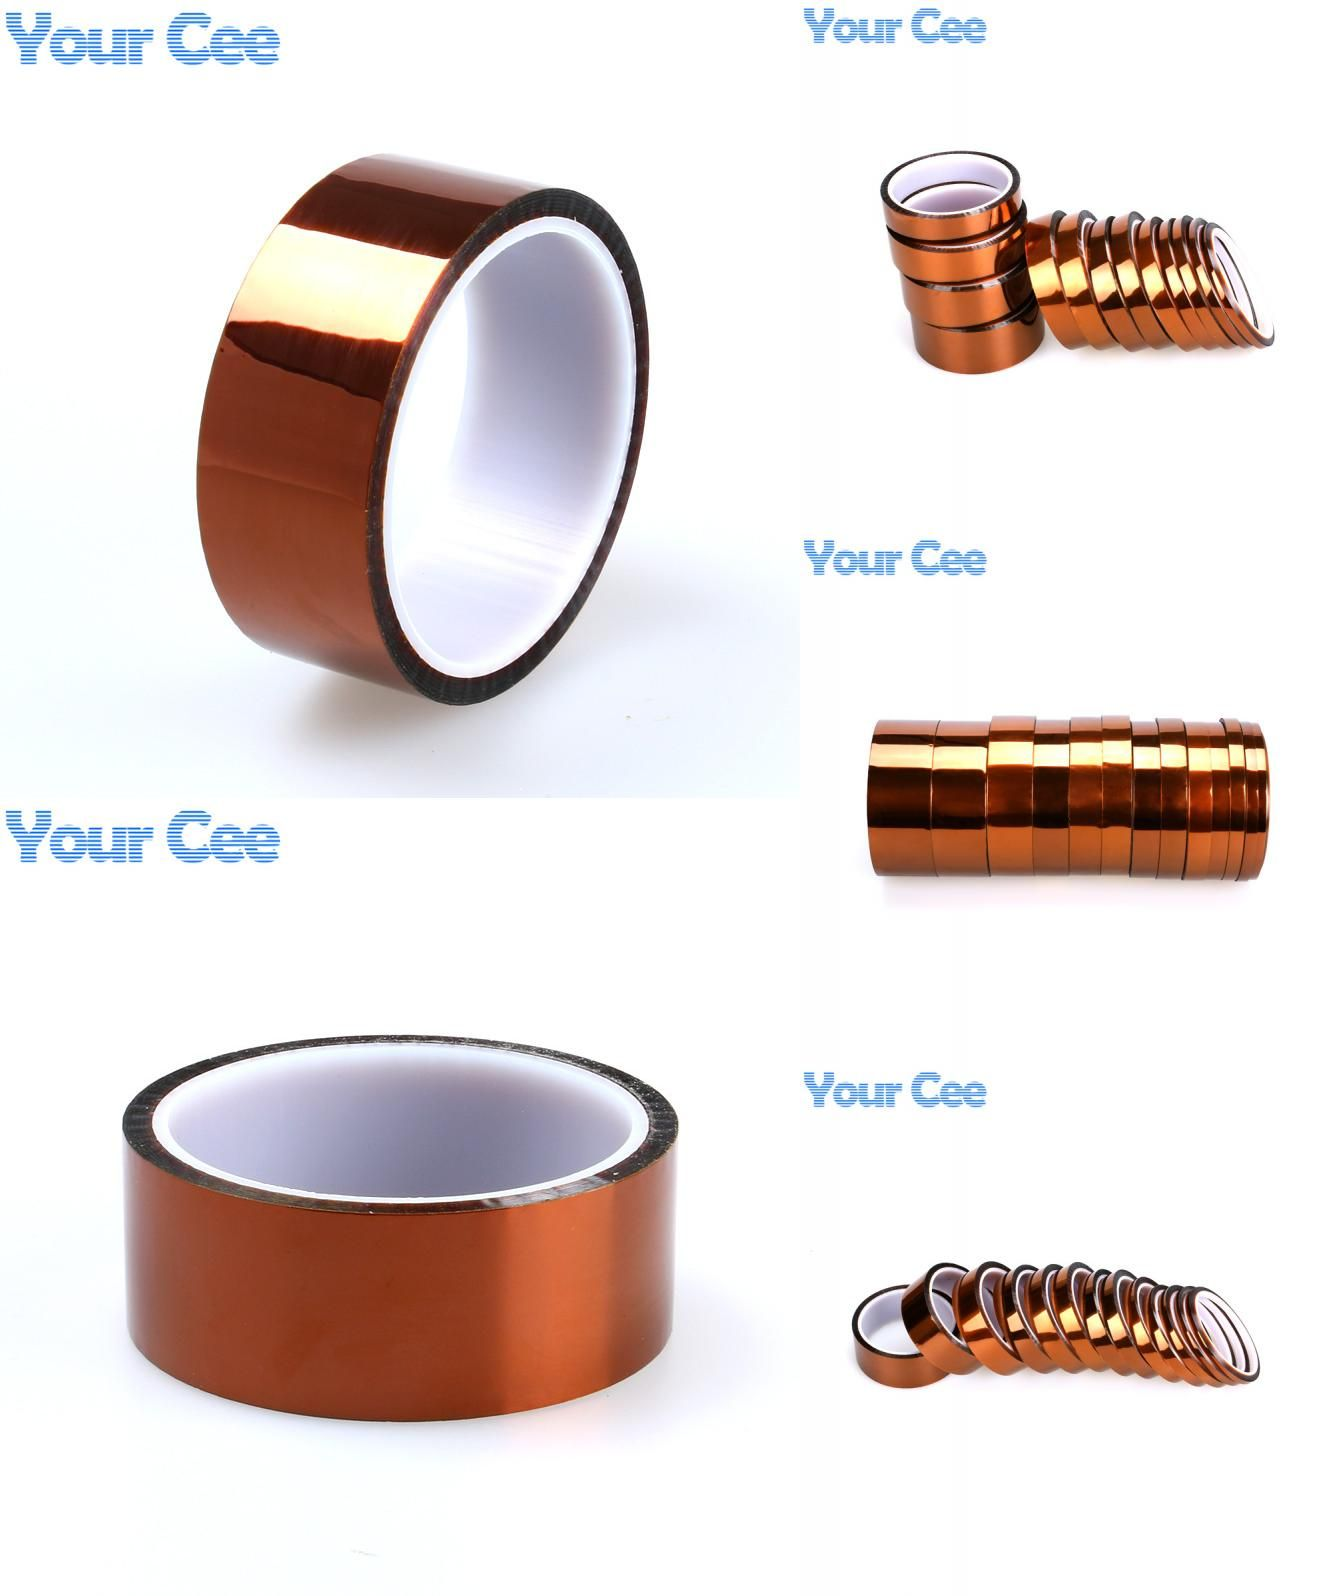 3.82US $ 2% OFF|35mm x 33m High Temperature Resistant Tape Heat Dedicated Tape Polyimide Tape for BGA PCB SMT 3D Printer Up to 250 Celsius|printer pcb|tape pentape binding - AliExpress